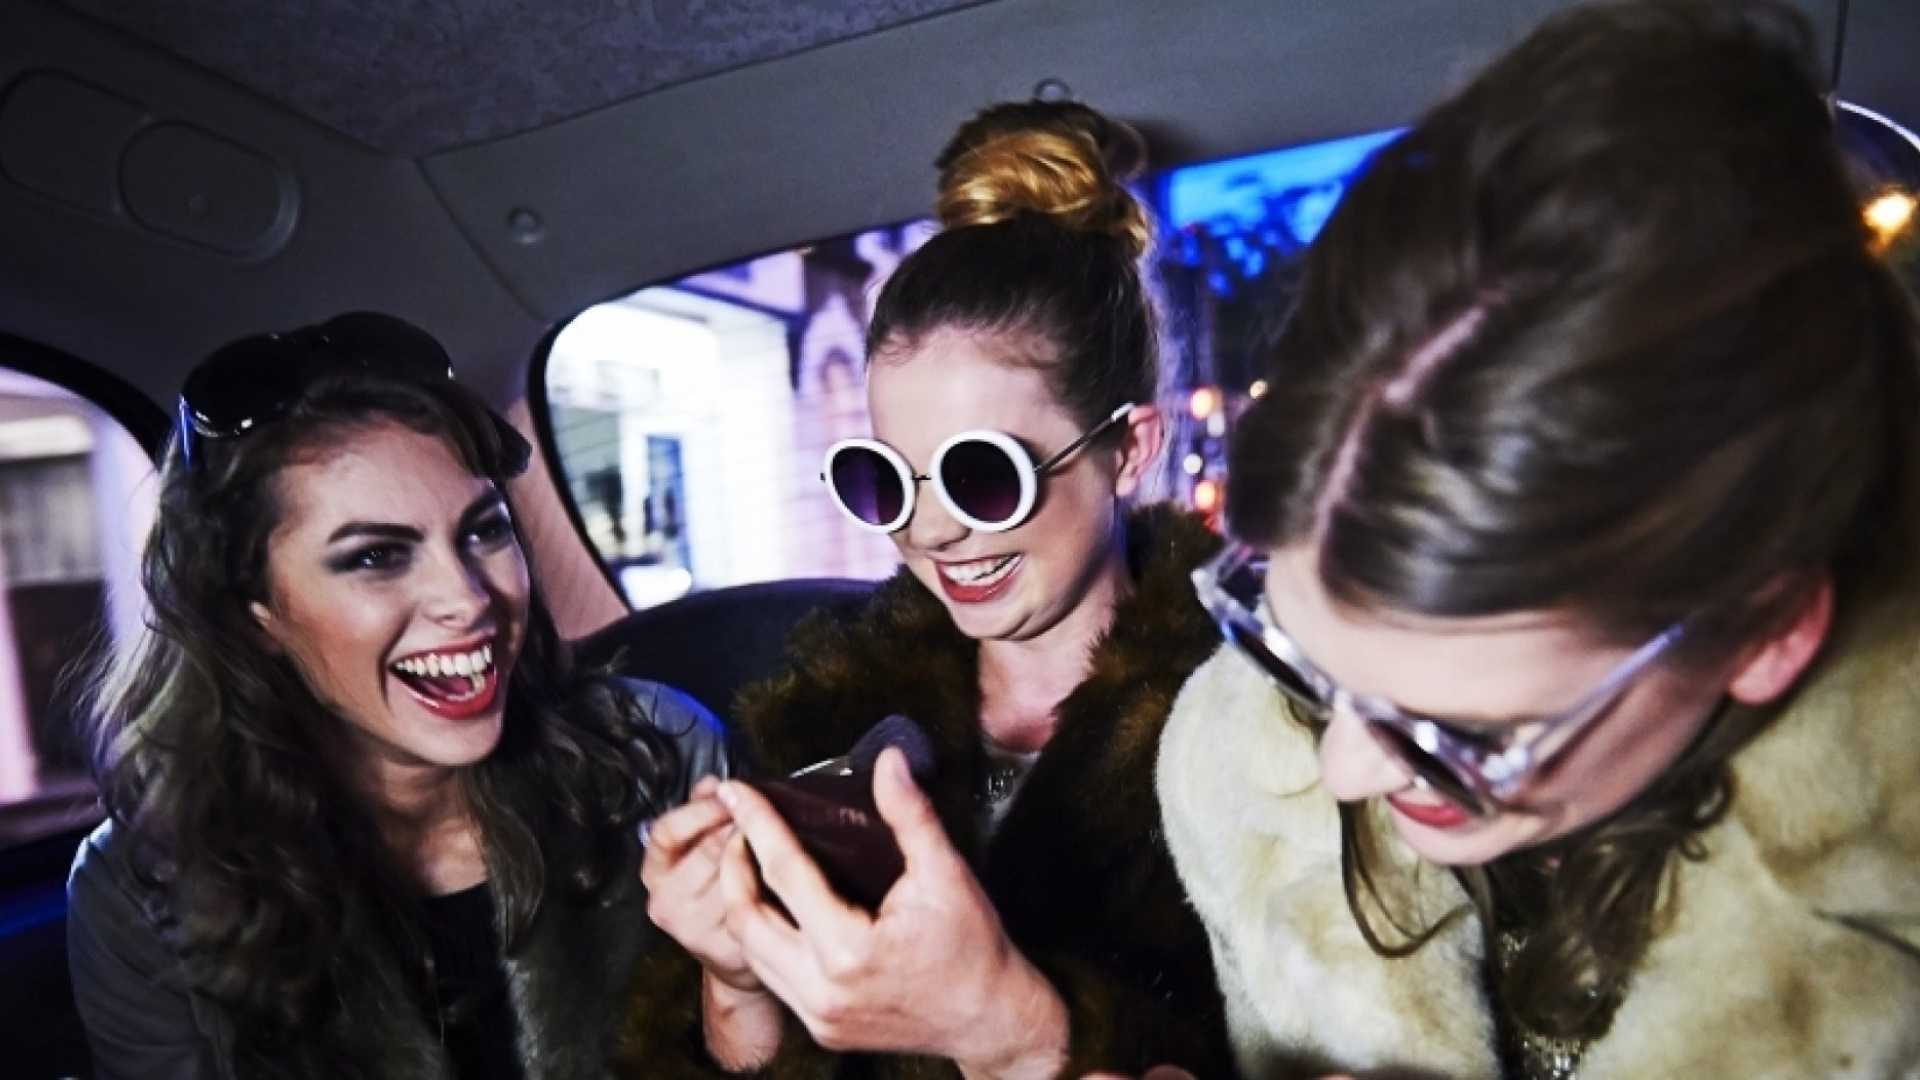 Basic Business Tips for Millennials and their Startups